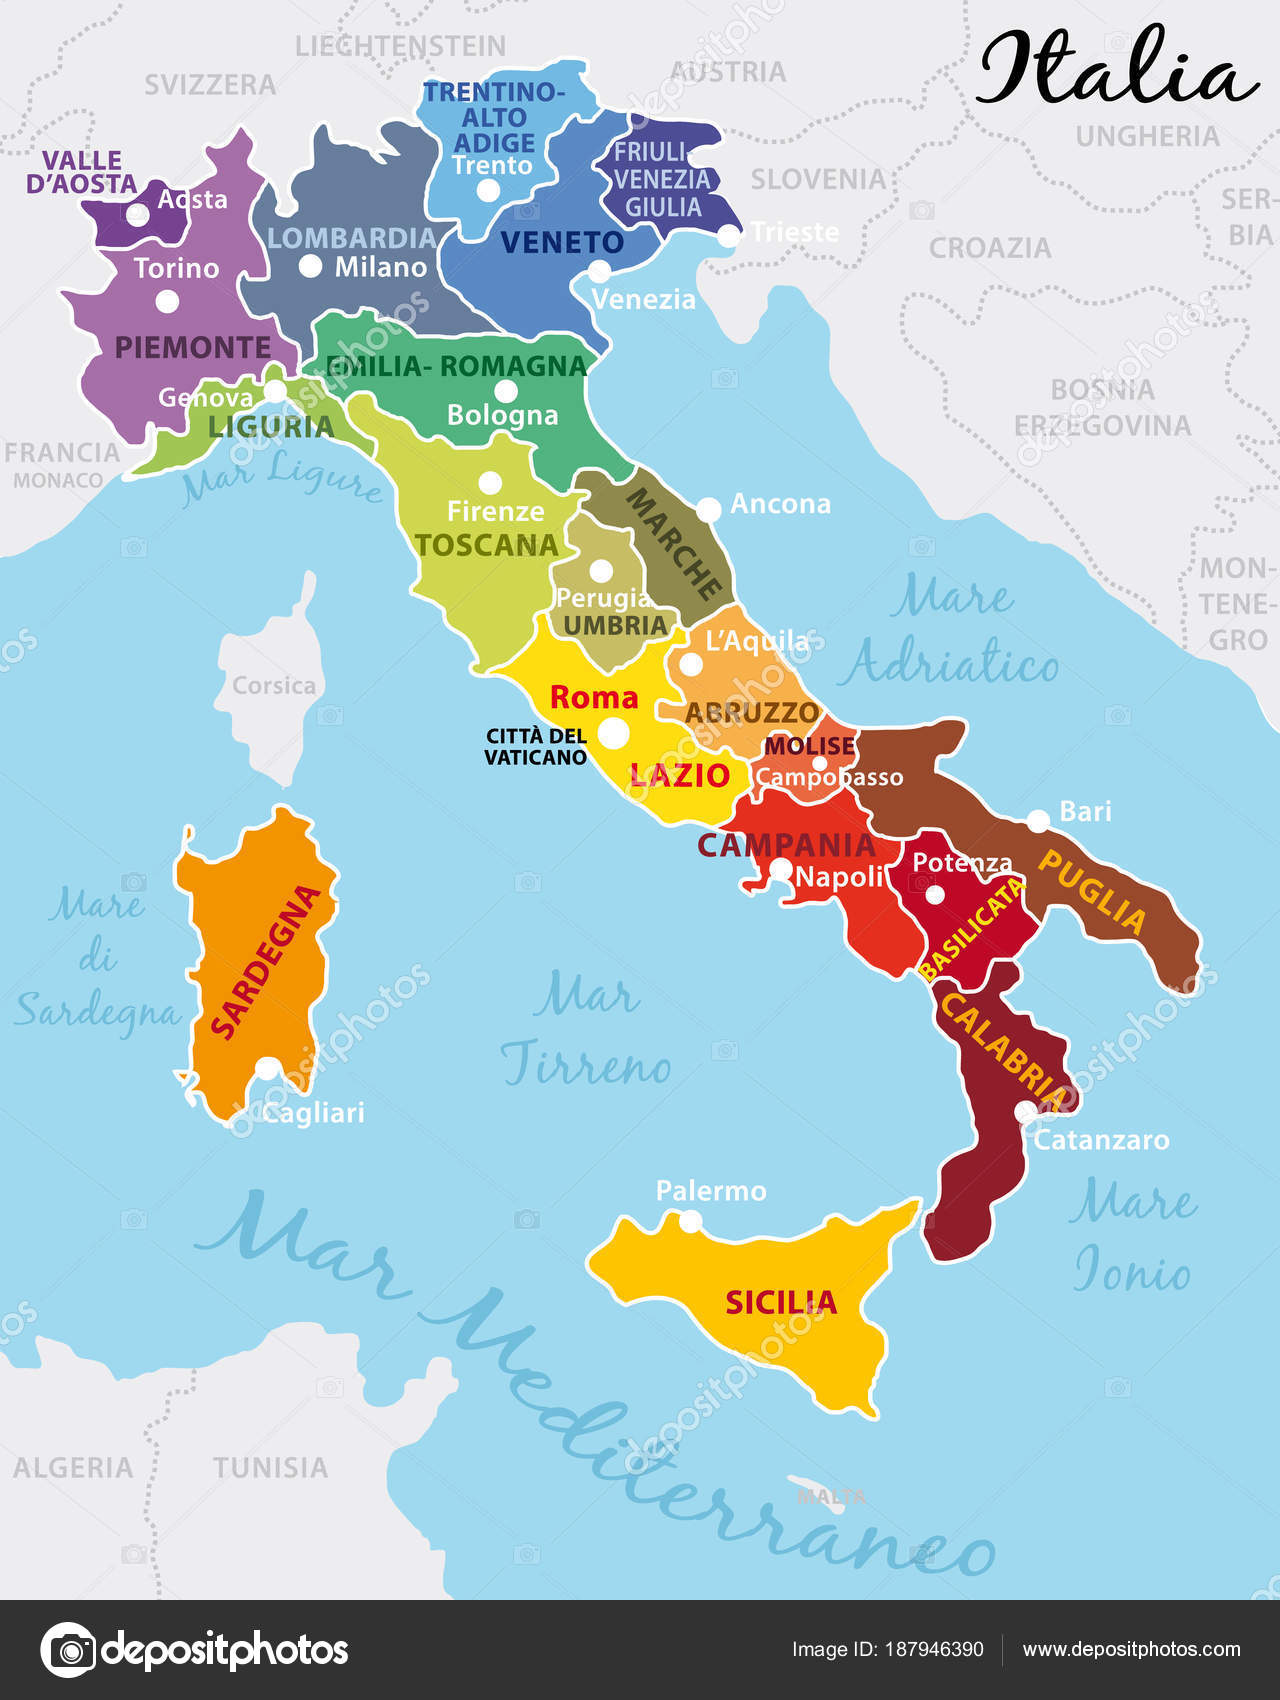 Map Of Italy In Italian.Beautiful Colorful Map Italy Italian Regions Capitals Important